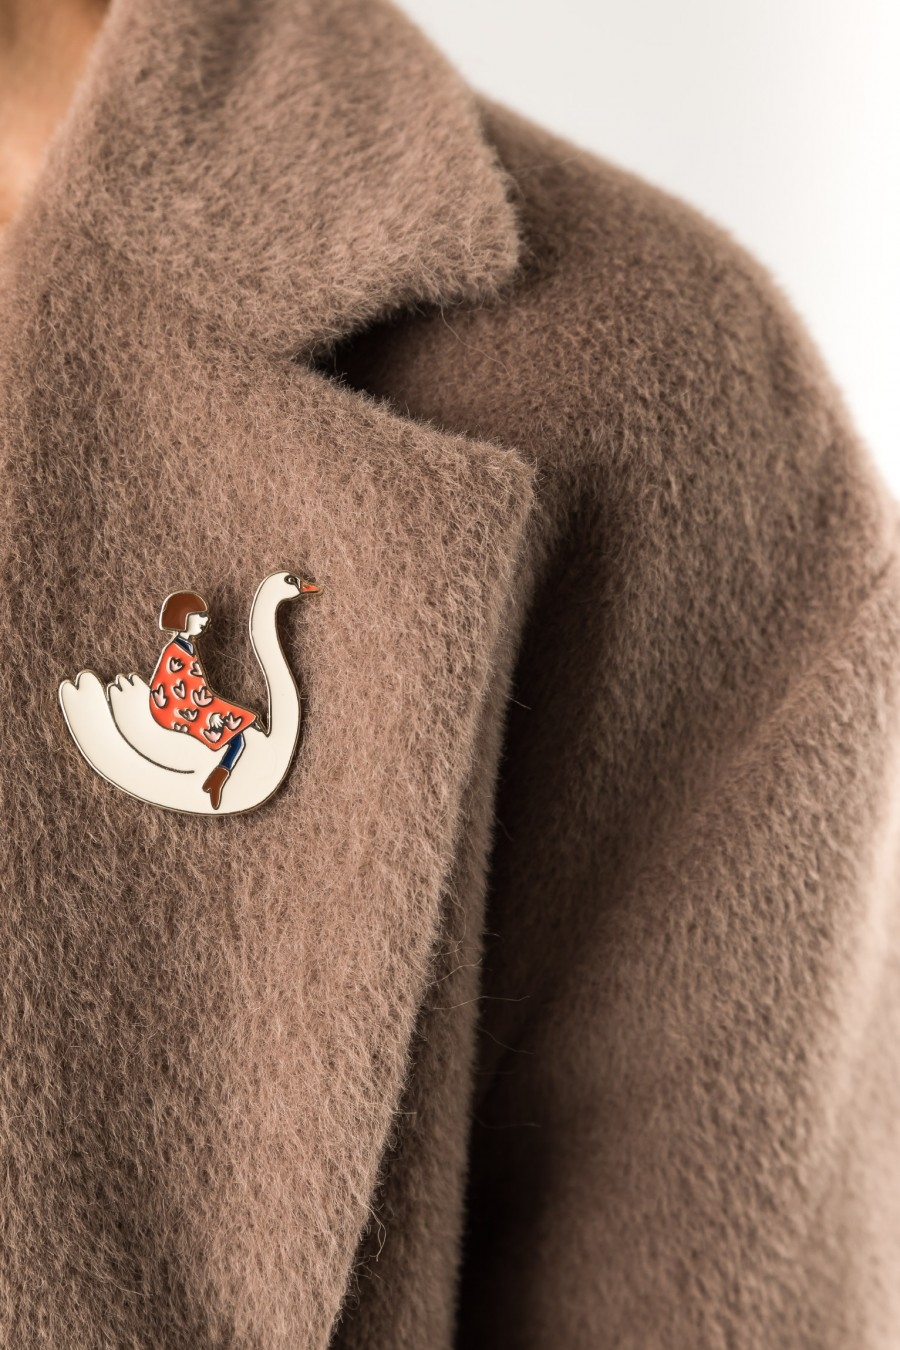 Pin with swan by Jennifer Bouron